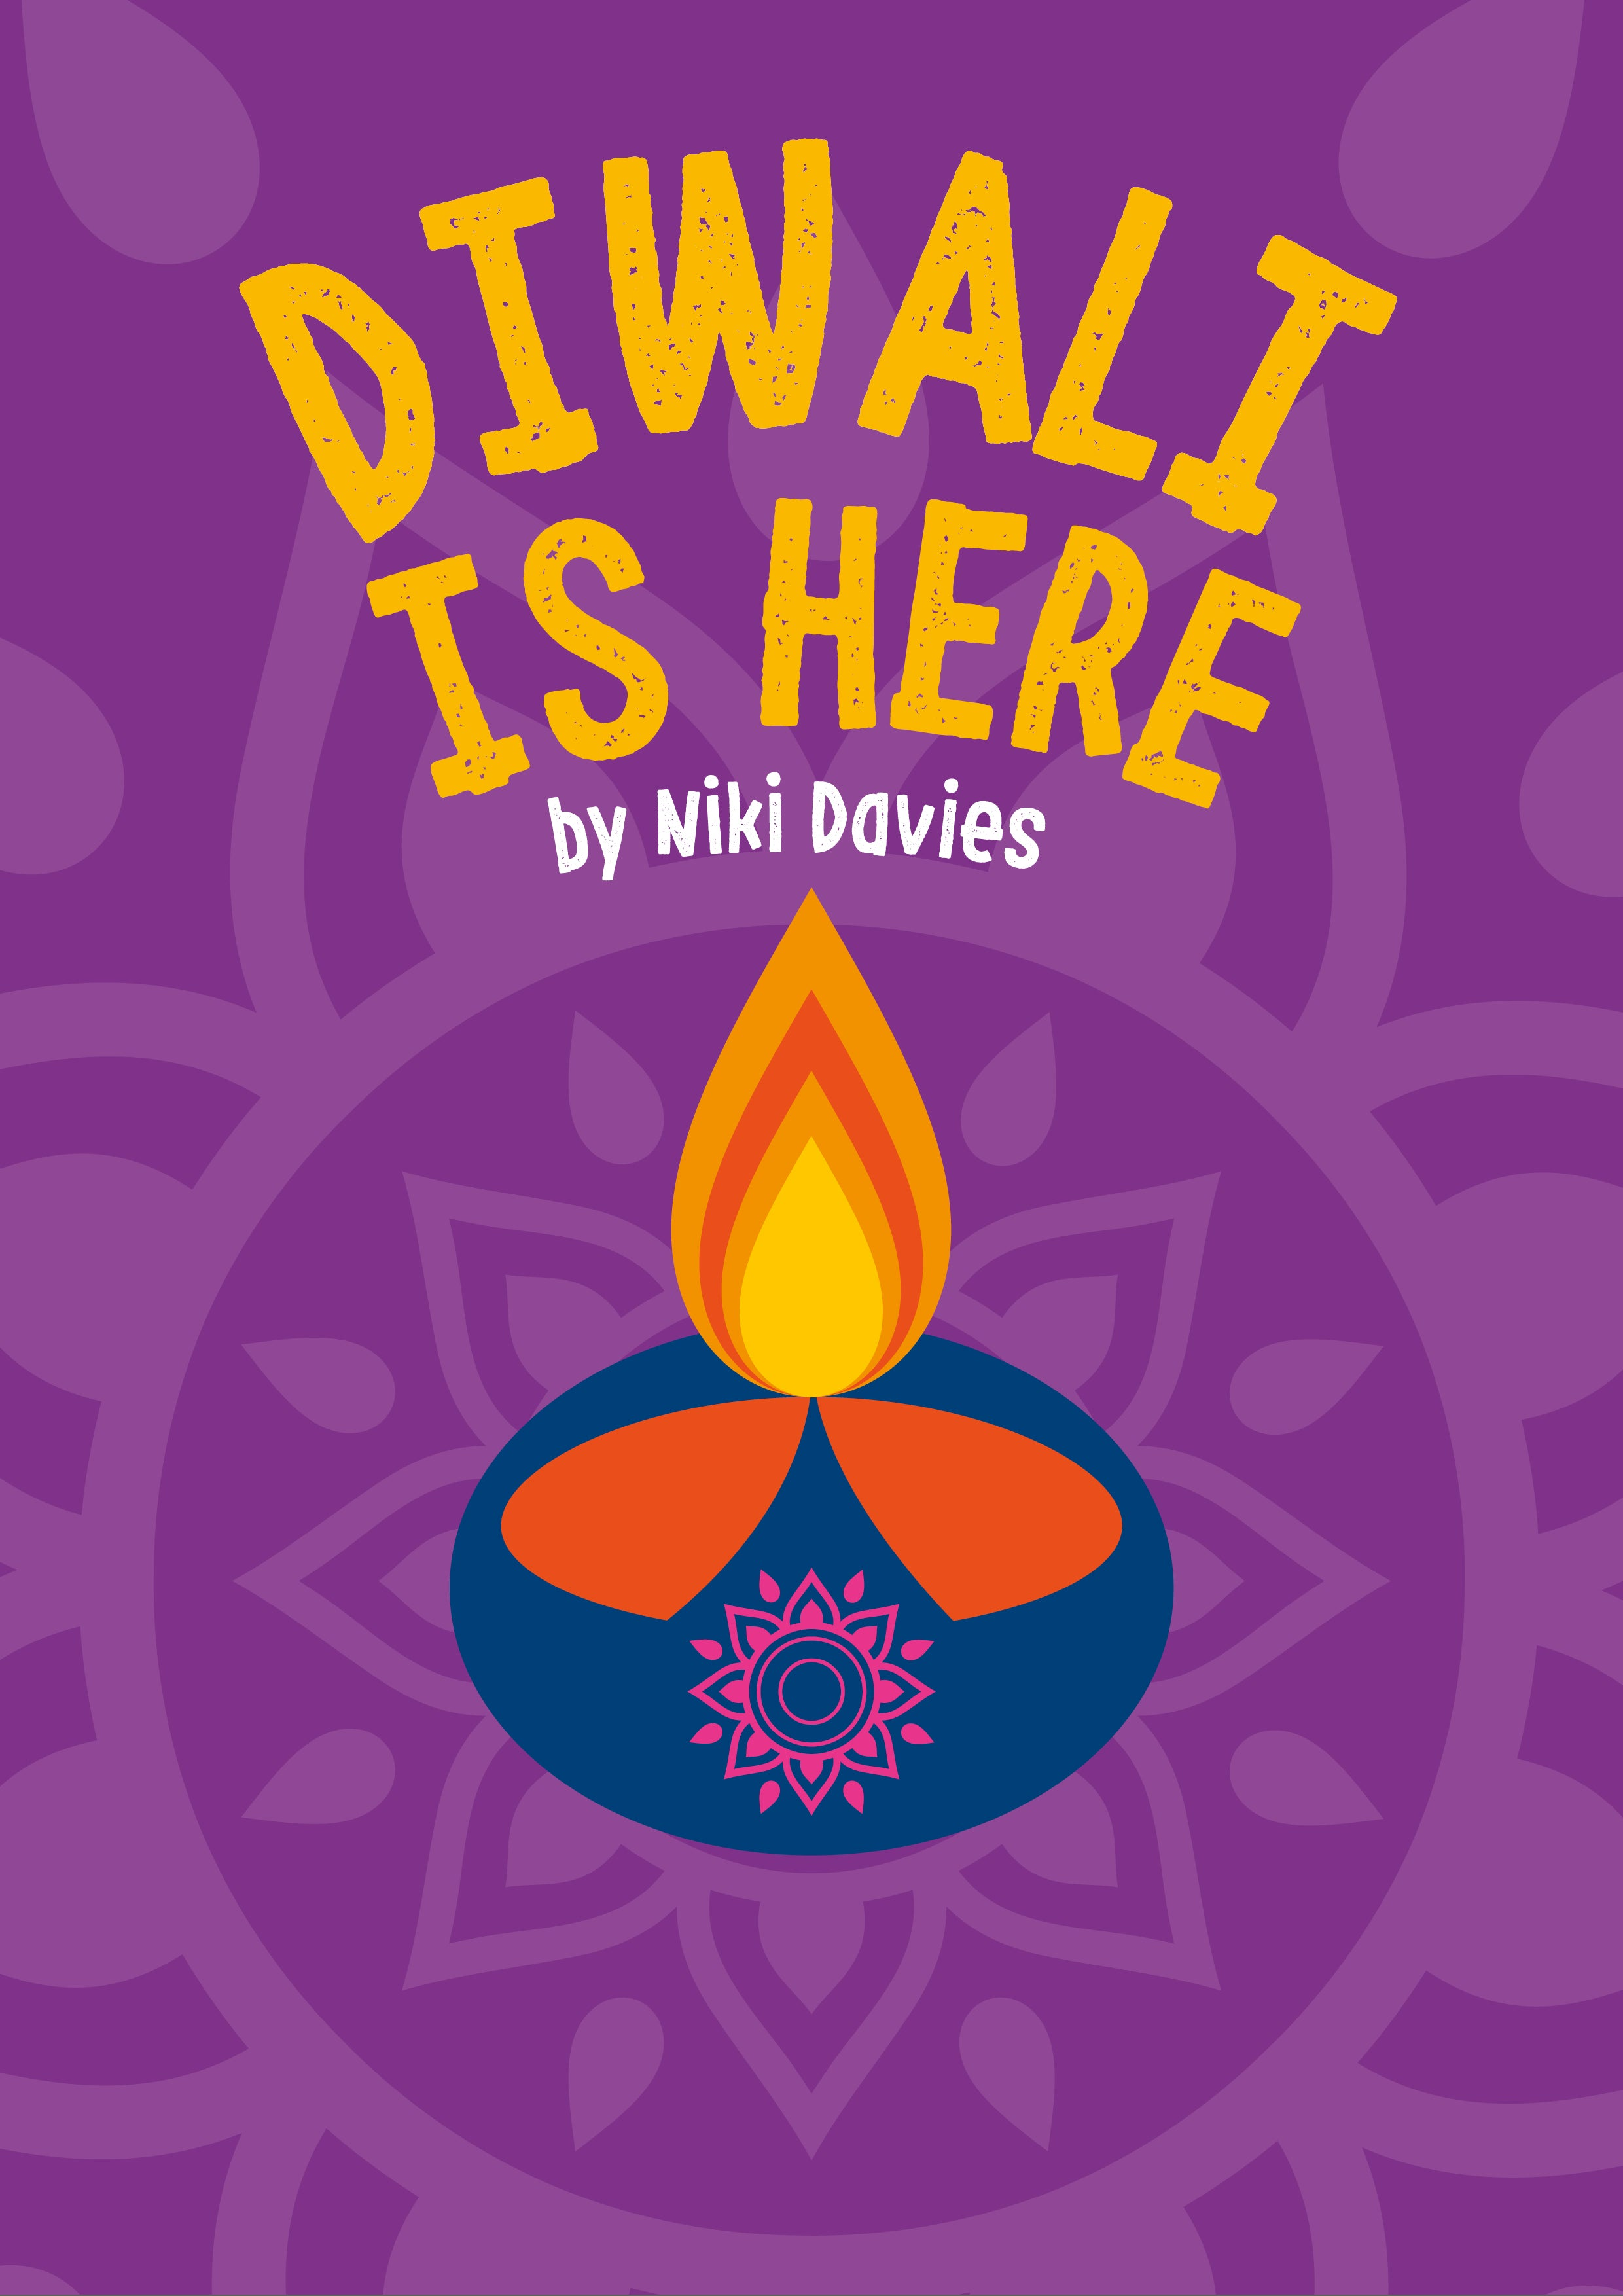 DIWALI IS HERE DOWNLOAD PACK - 100% discount with code DIWALI20